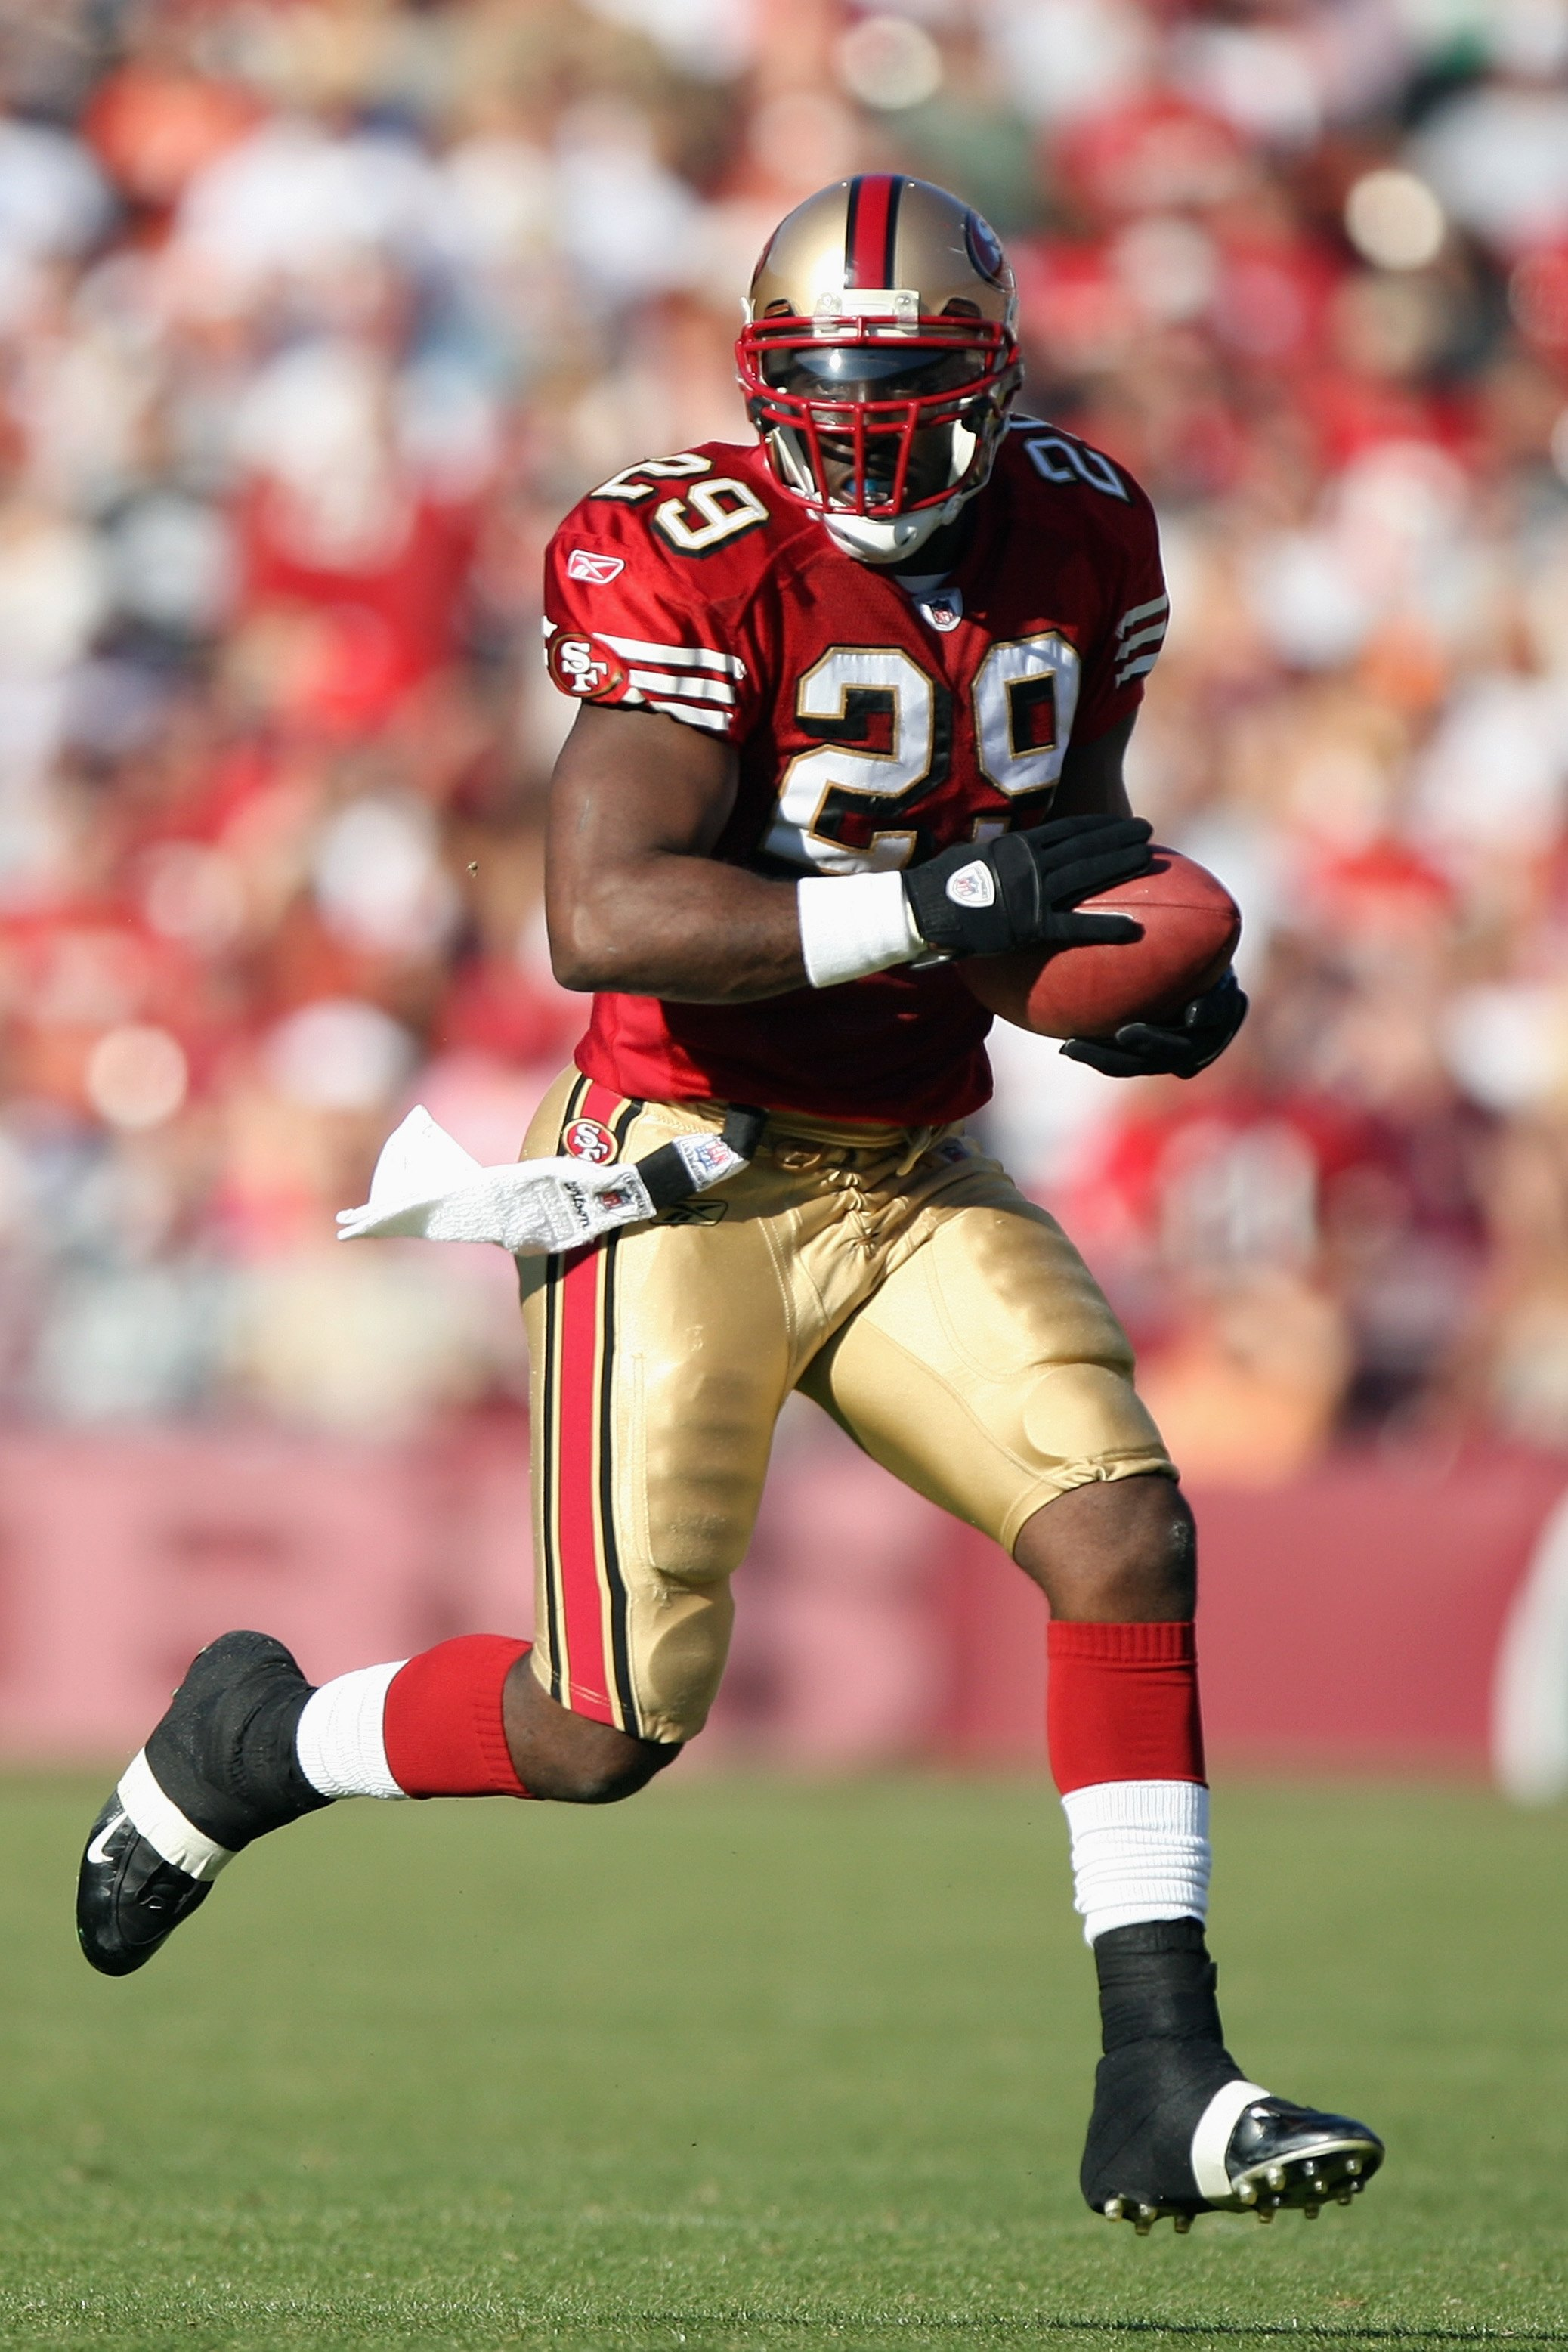 SAN FRANCISCO - NOVEMBER 16:  DeShaun Foster #29 of the San Francisco 49ers carries the ball during the game against the St. Louis Rams on November 16, 2008 at Candlestick Park in San Francisco, California. (Photo by Jed Jacobsohn/Getty Images)